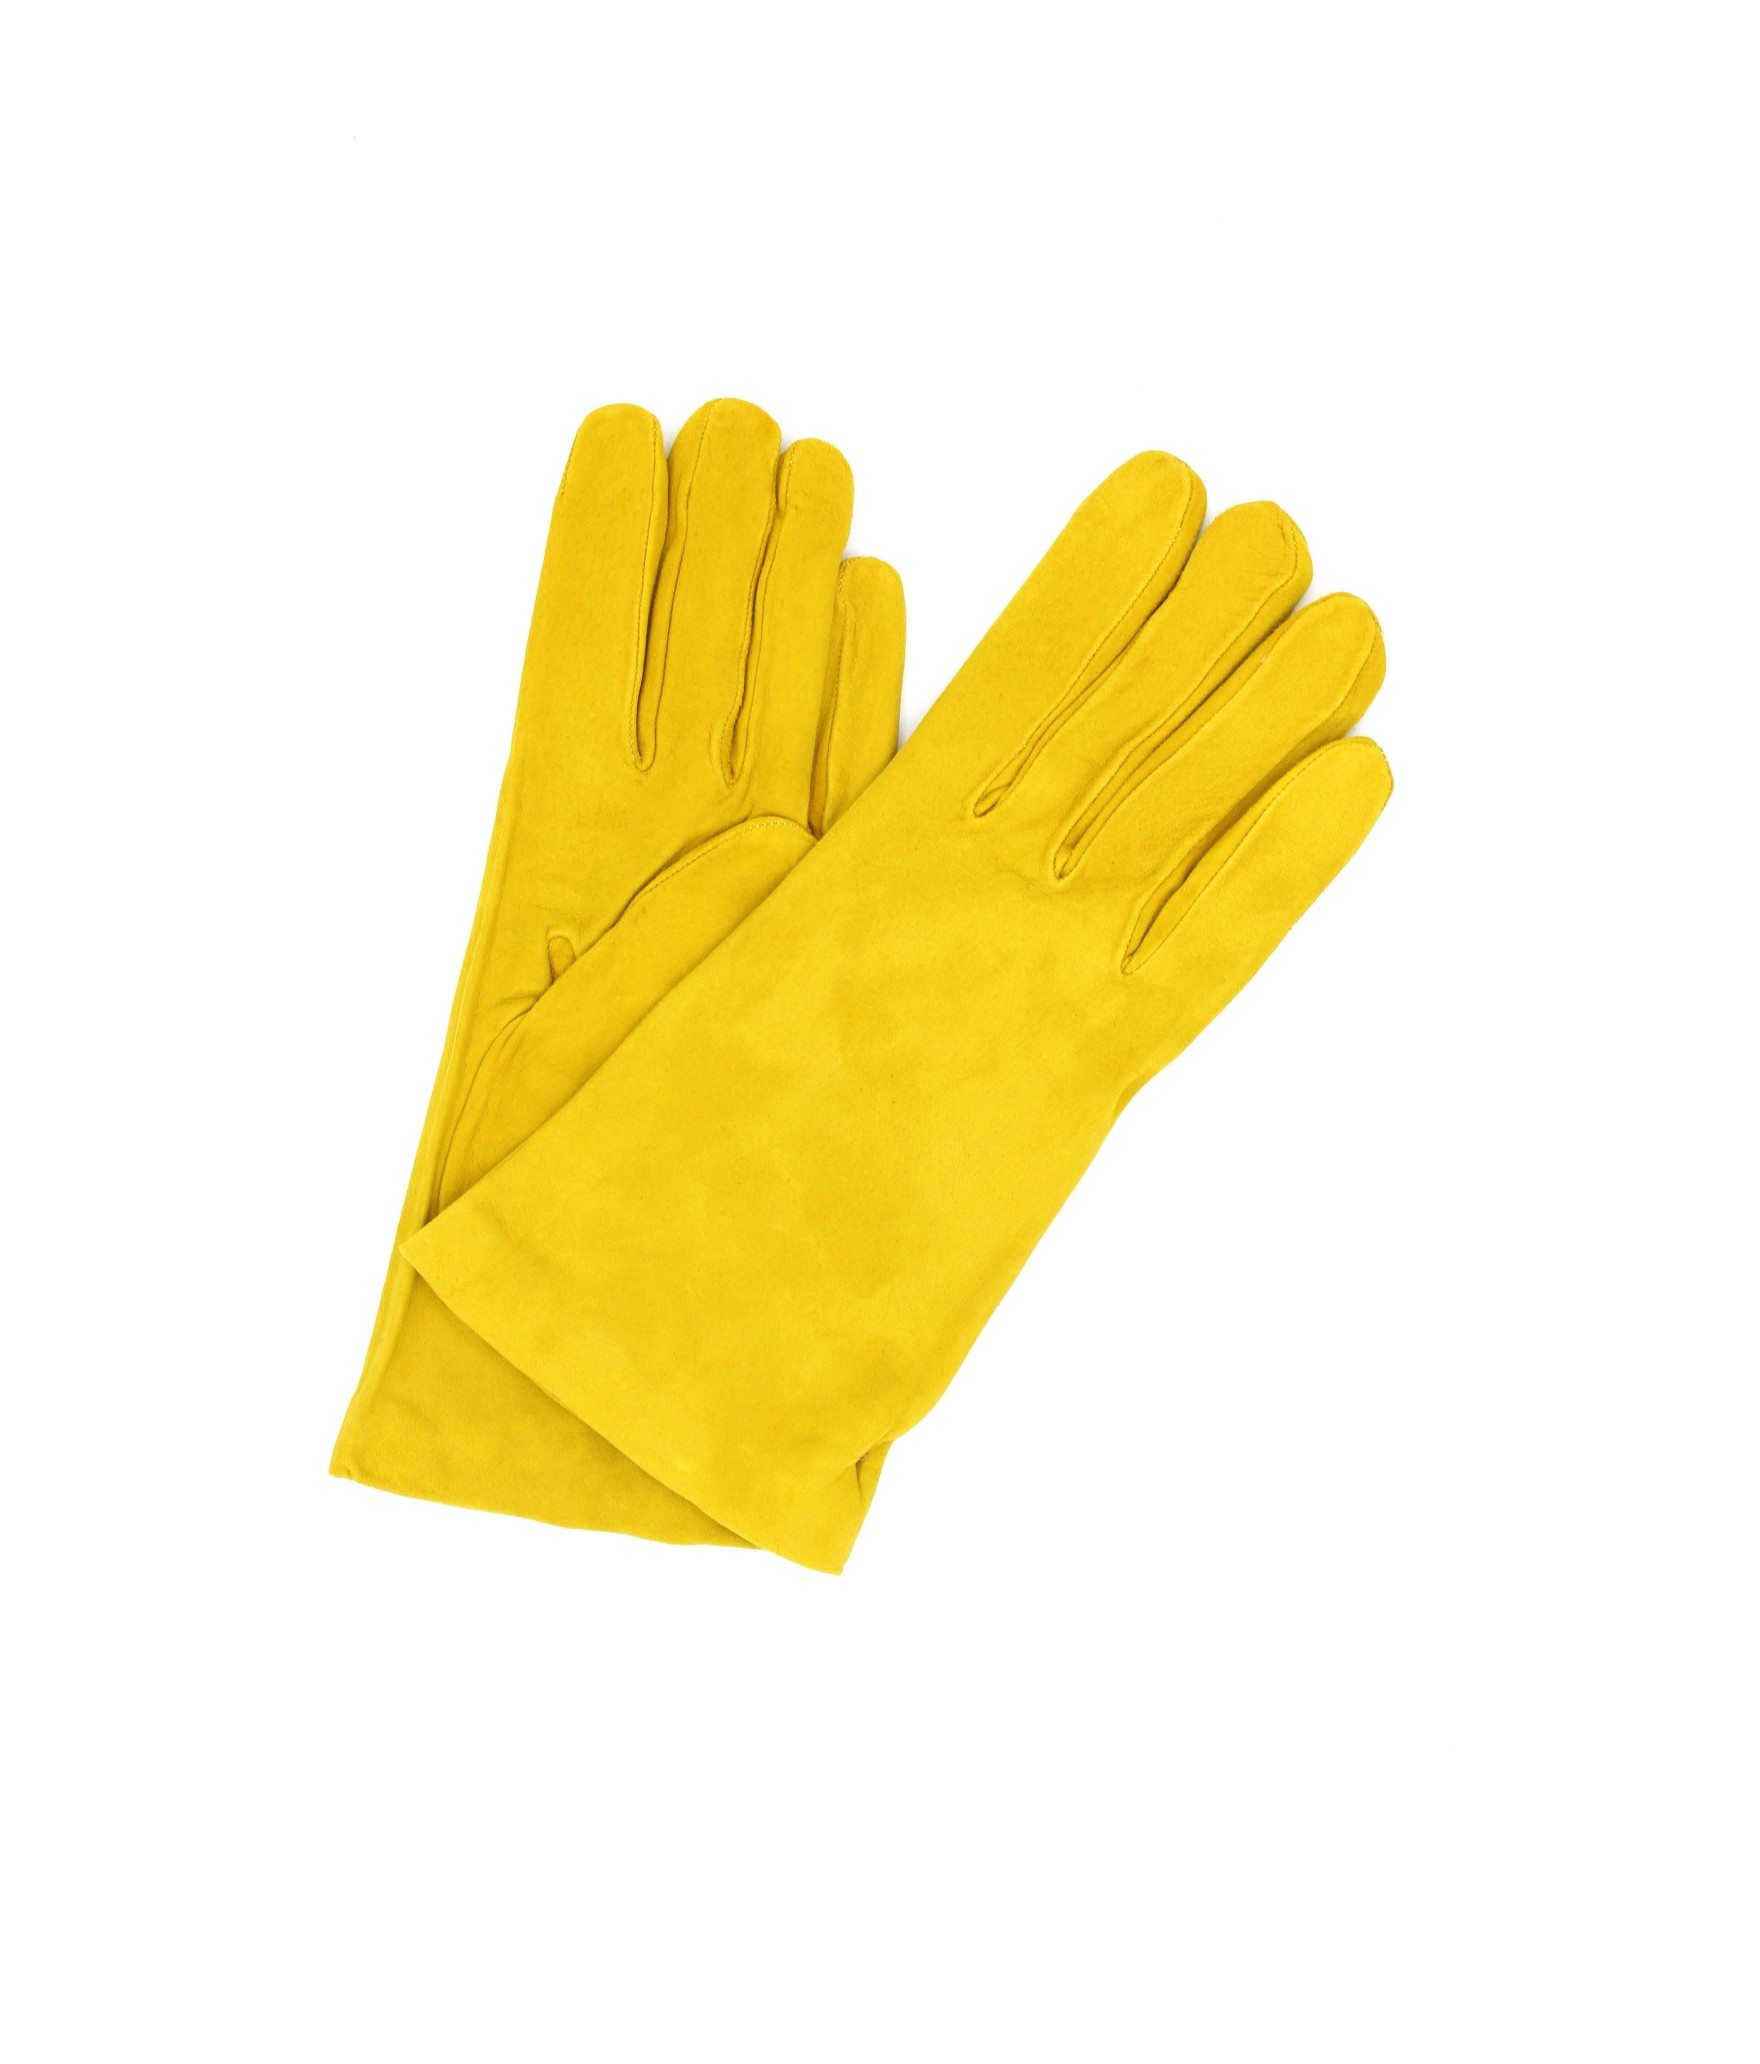 Suede Nappa leather gloves lined Cashmere Yellow Sermoneta